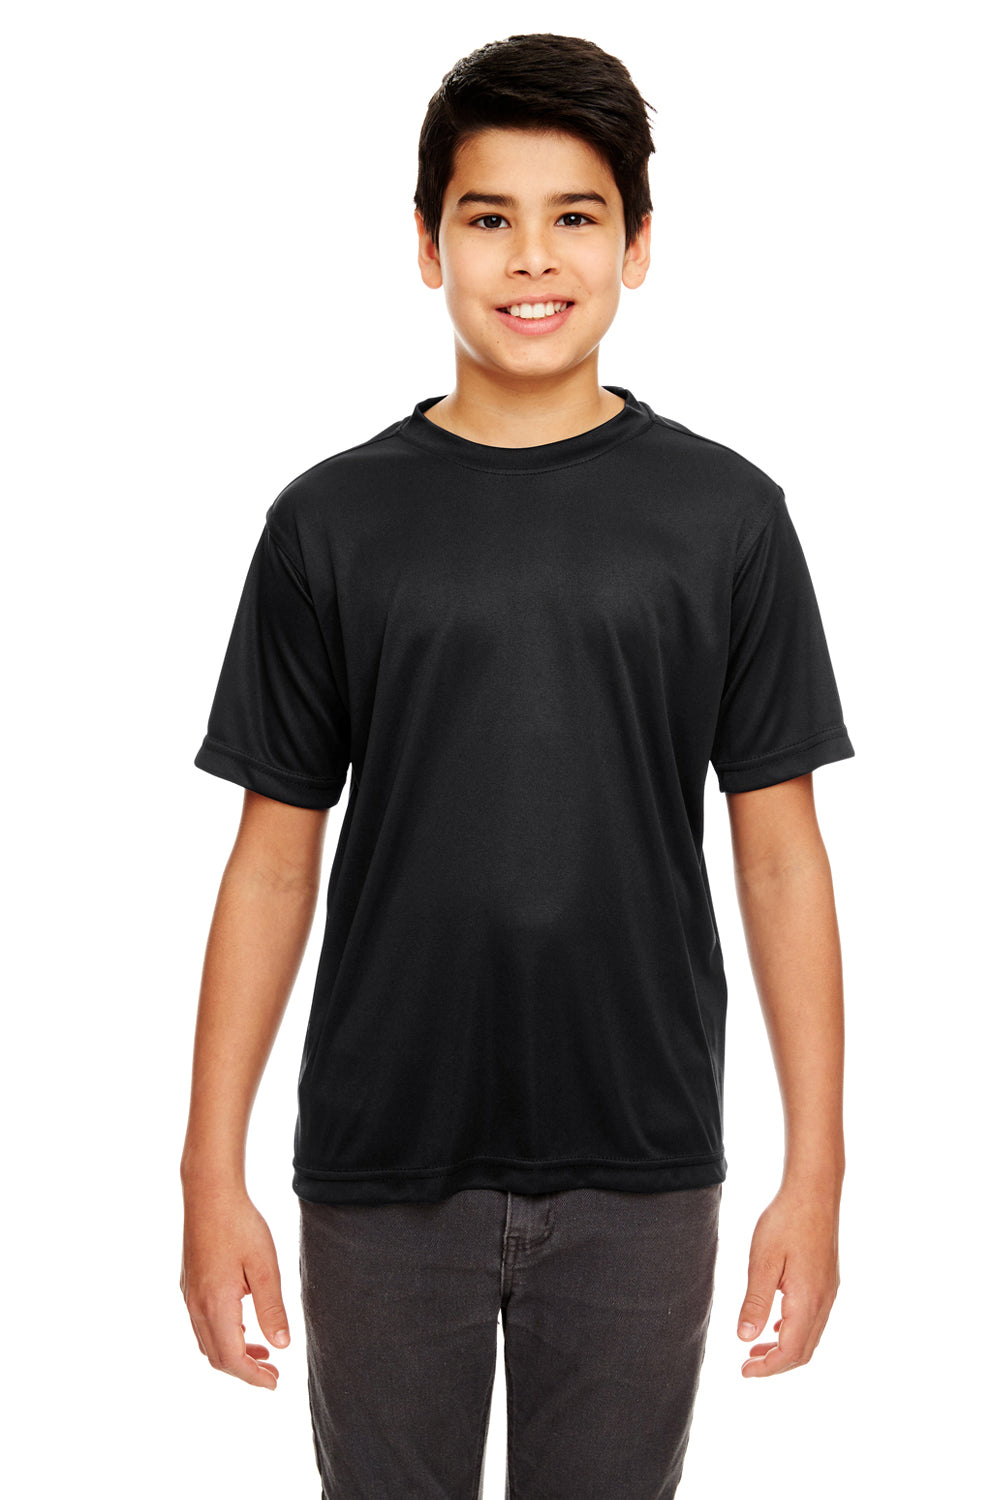 UltraClub 8620Y Youth Cool & Dry Performance Moisture Wicking Short Sleeve Crewneck T-Shirt Black Front